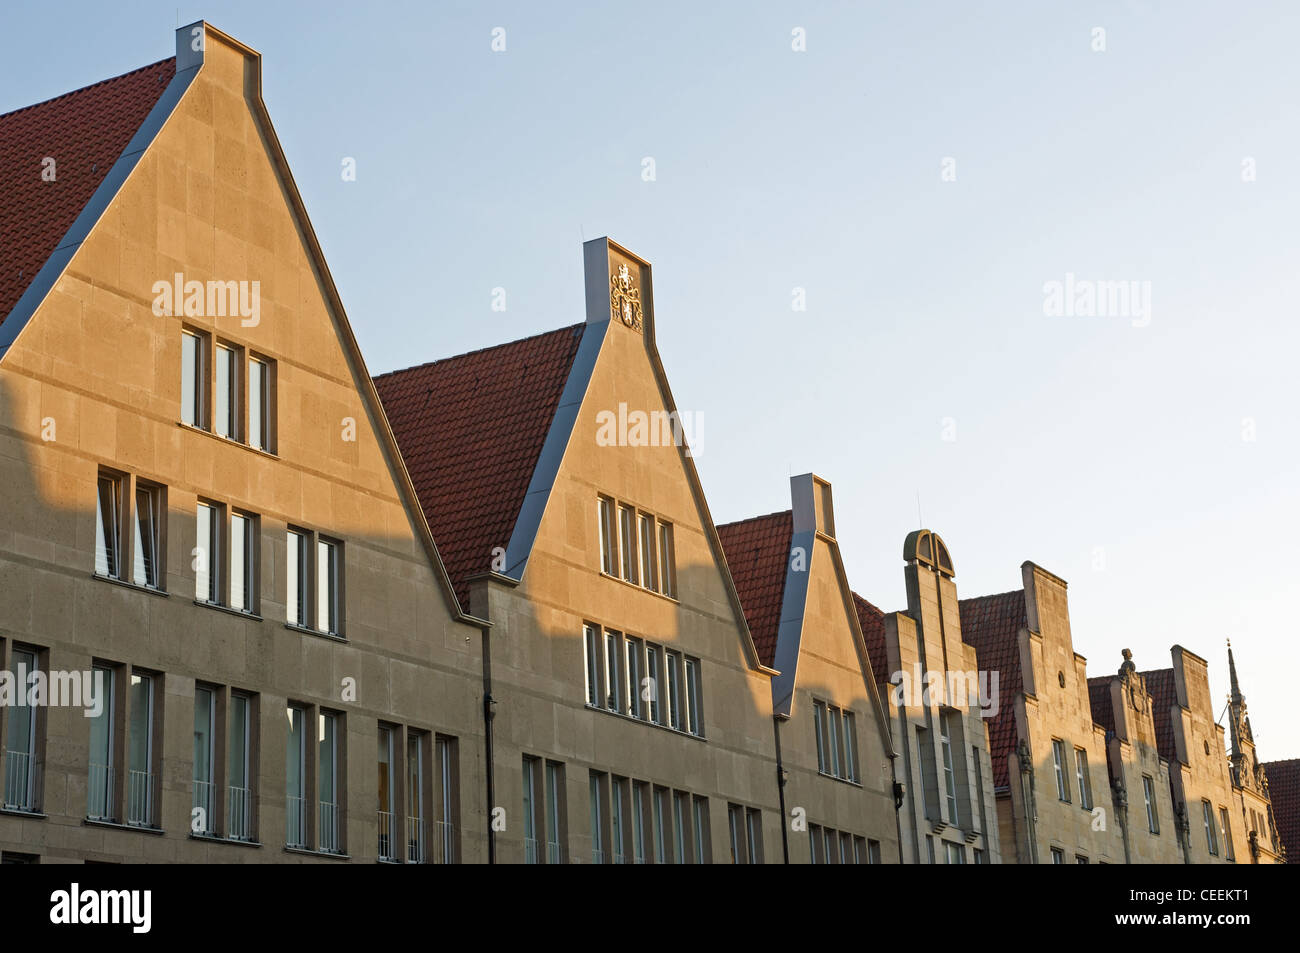 Gabled ended buildings Munster Germany - Stock Image